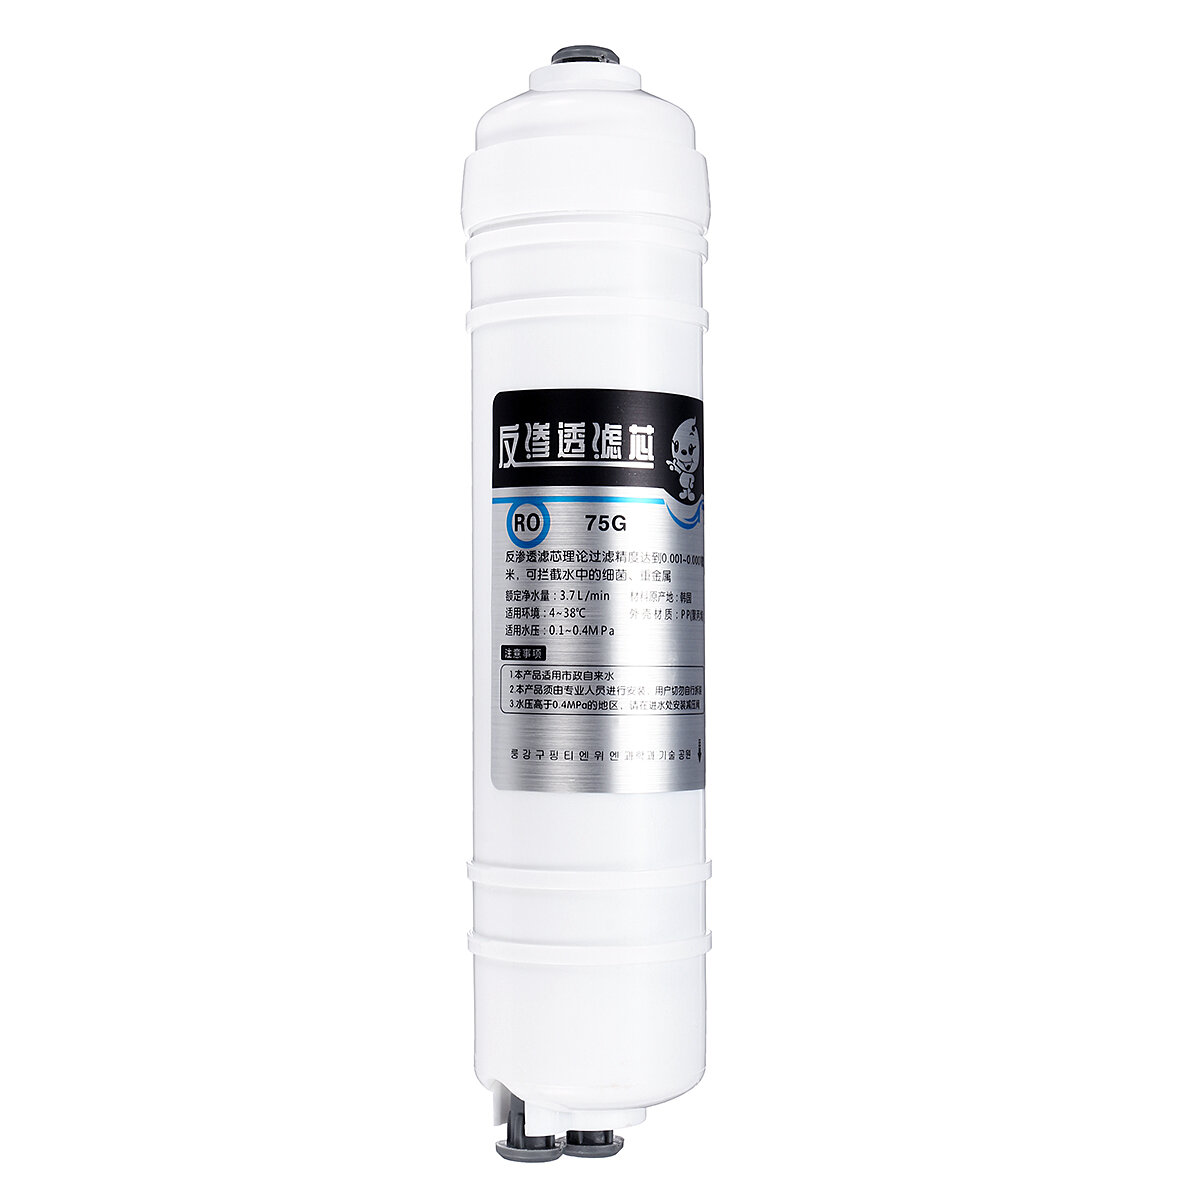 75G Water Filter RO Membrane Filter for Pure Water Purifier Reverse Osmosis System RO Water Purifier Filter Element